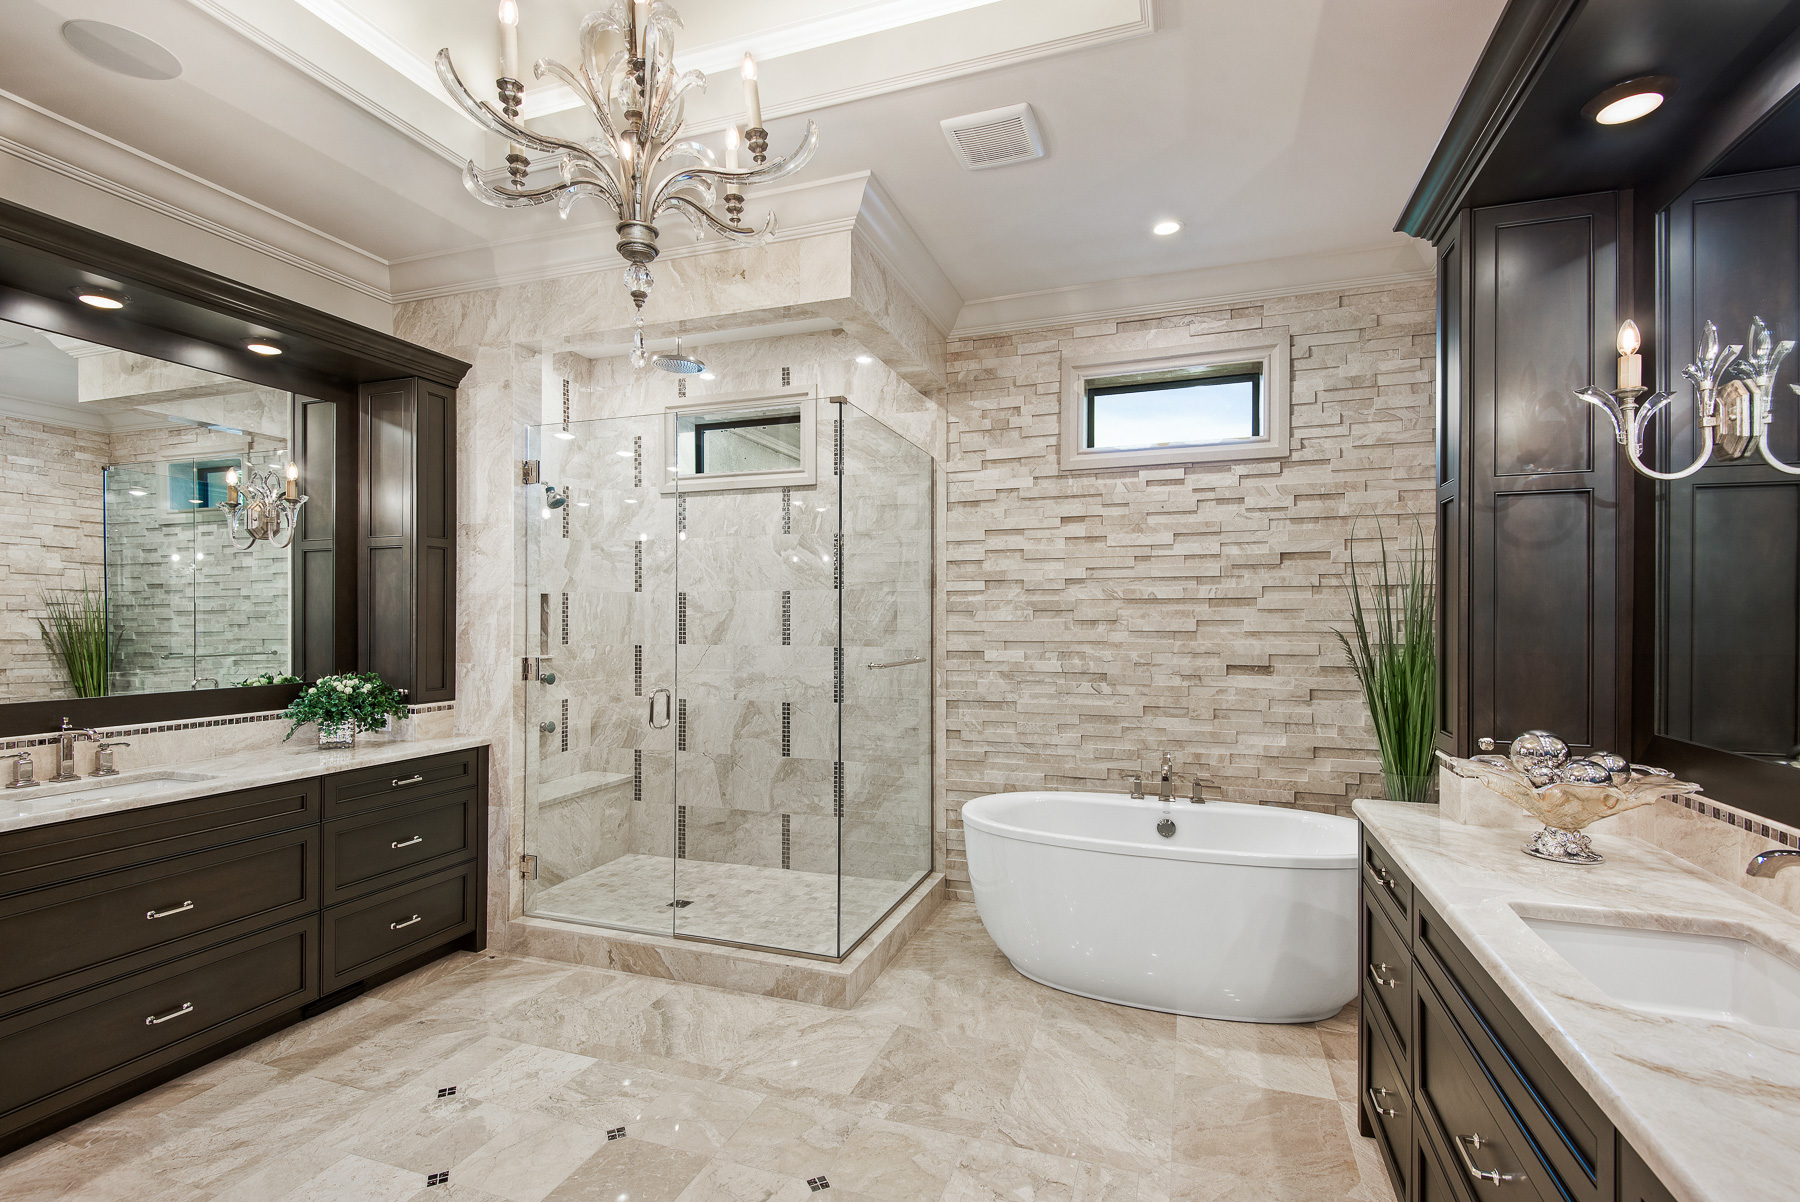 Interior Design Master Bath